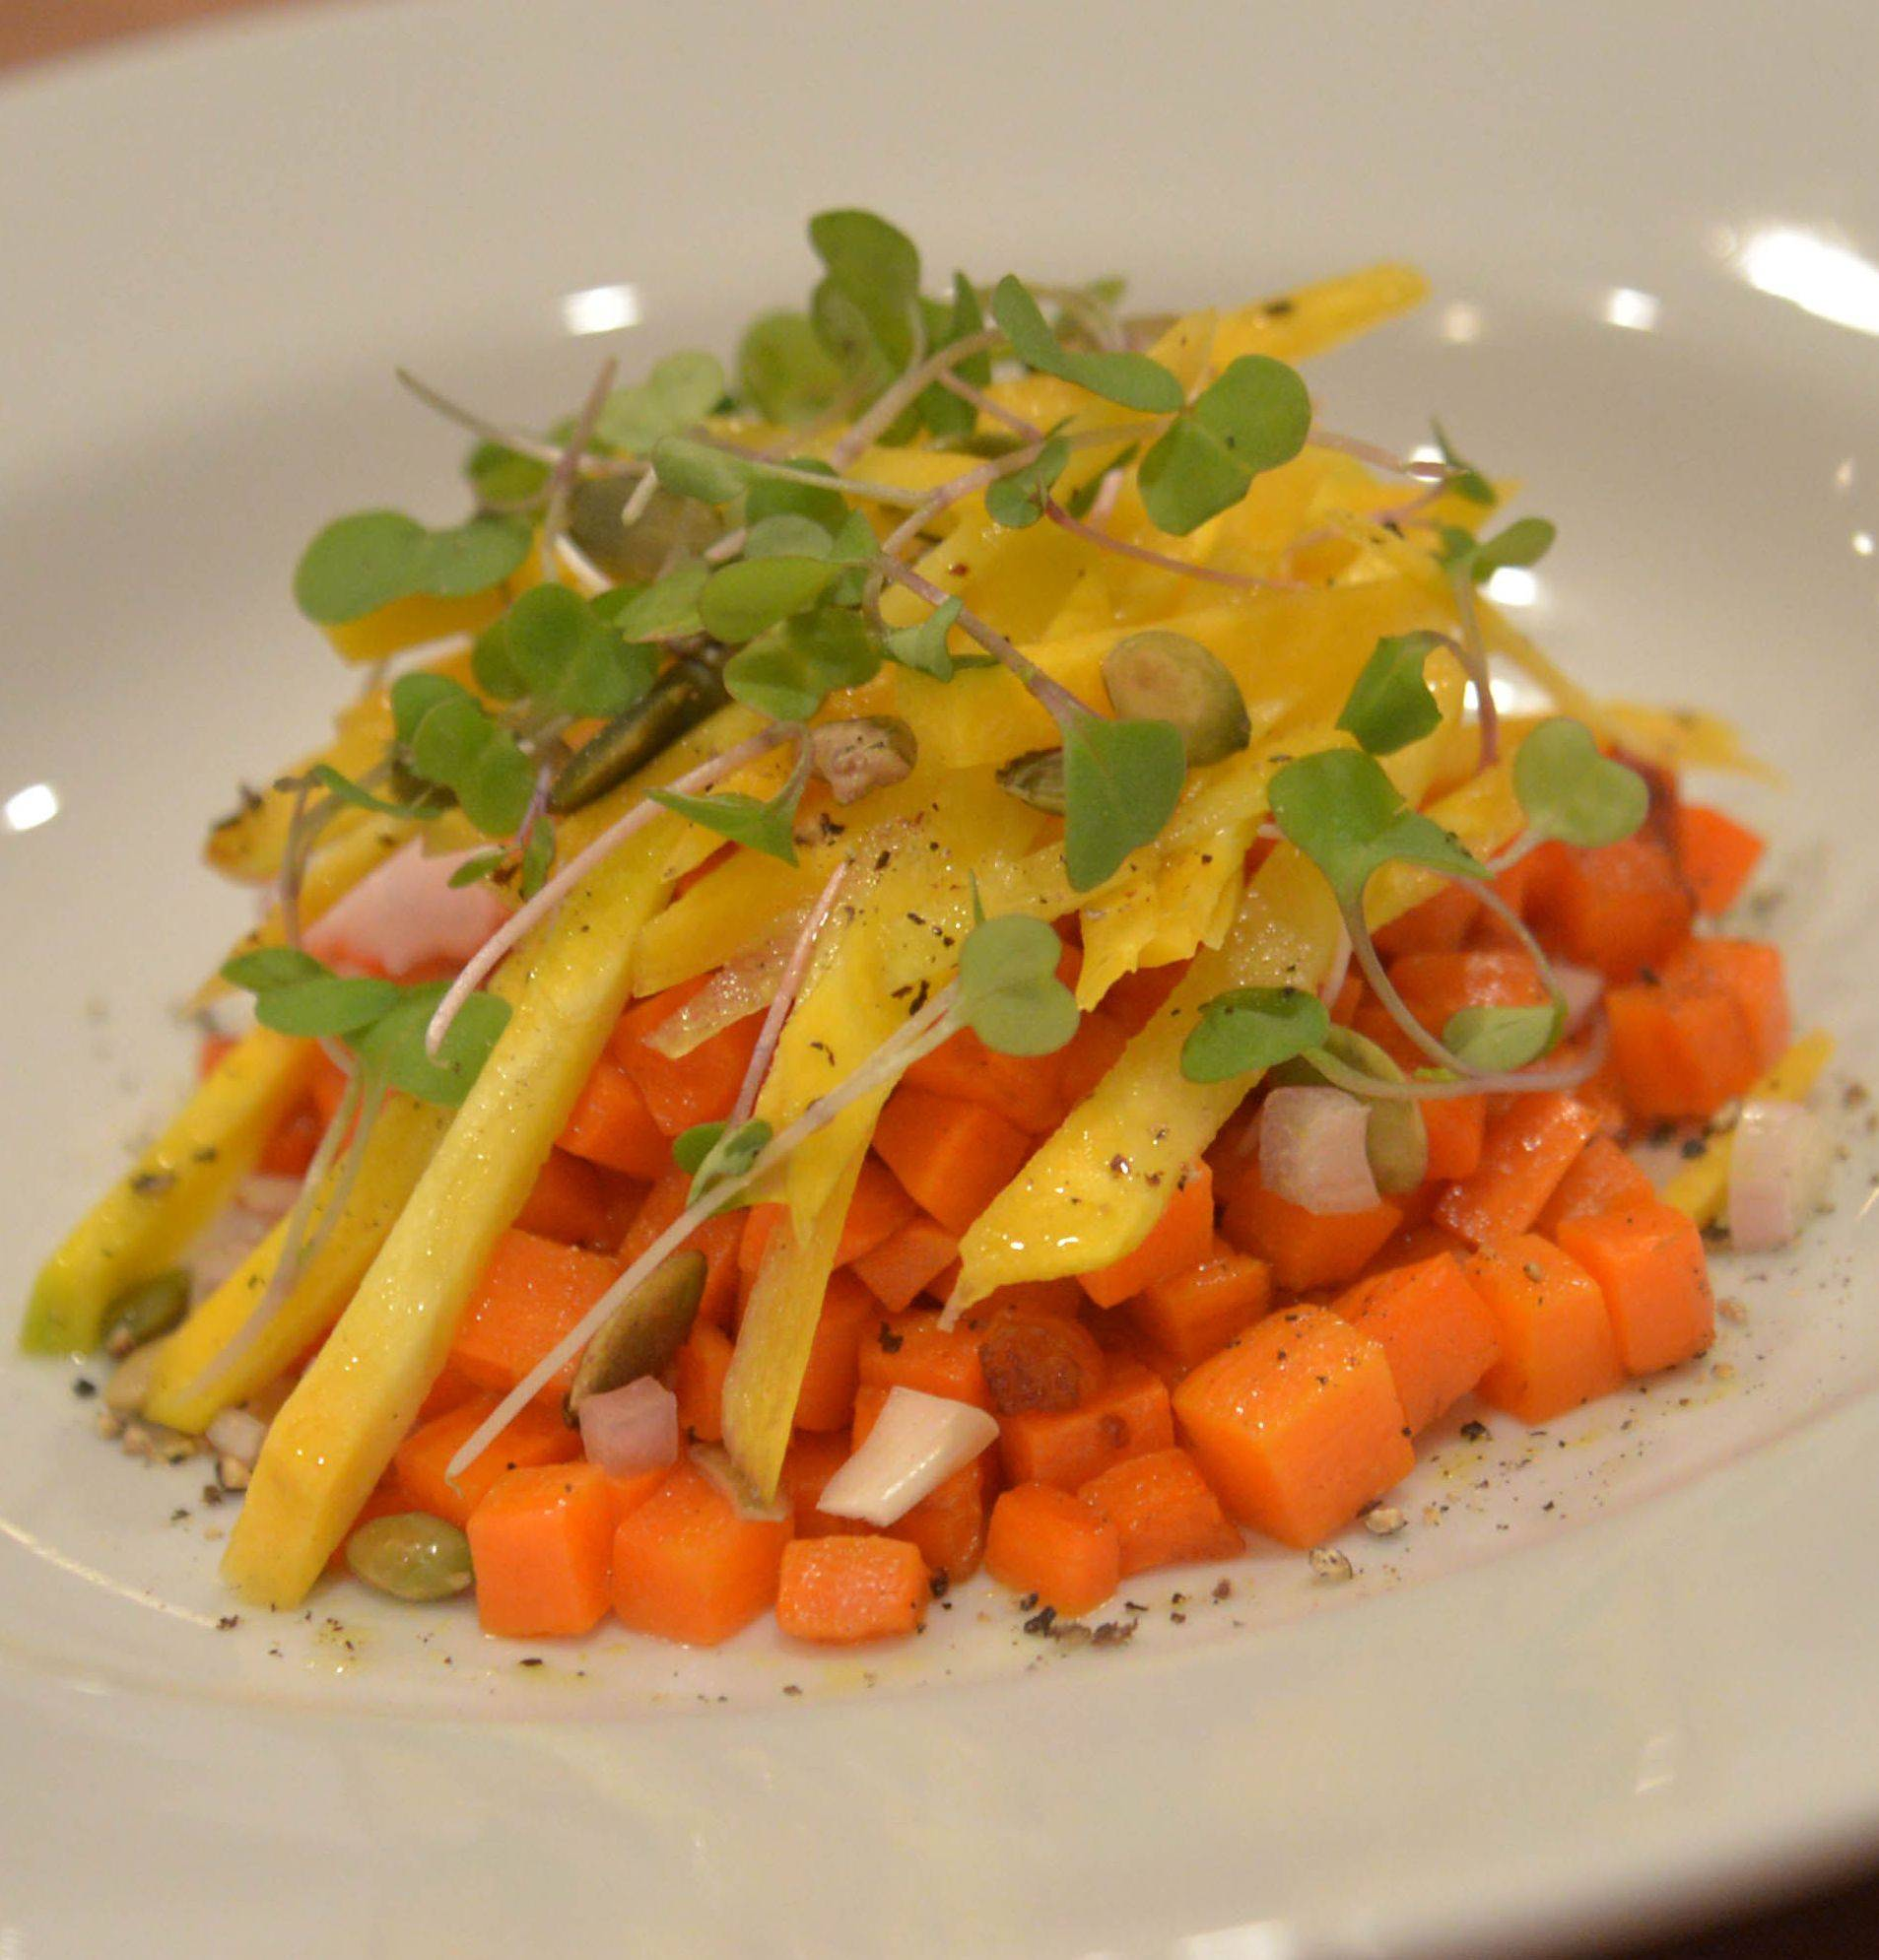 Elliott Papineau serves carrots, hot and cold, in the same dish.